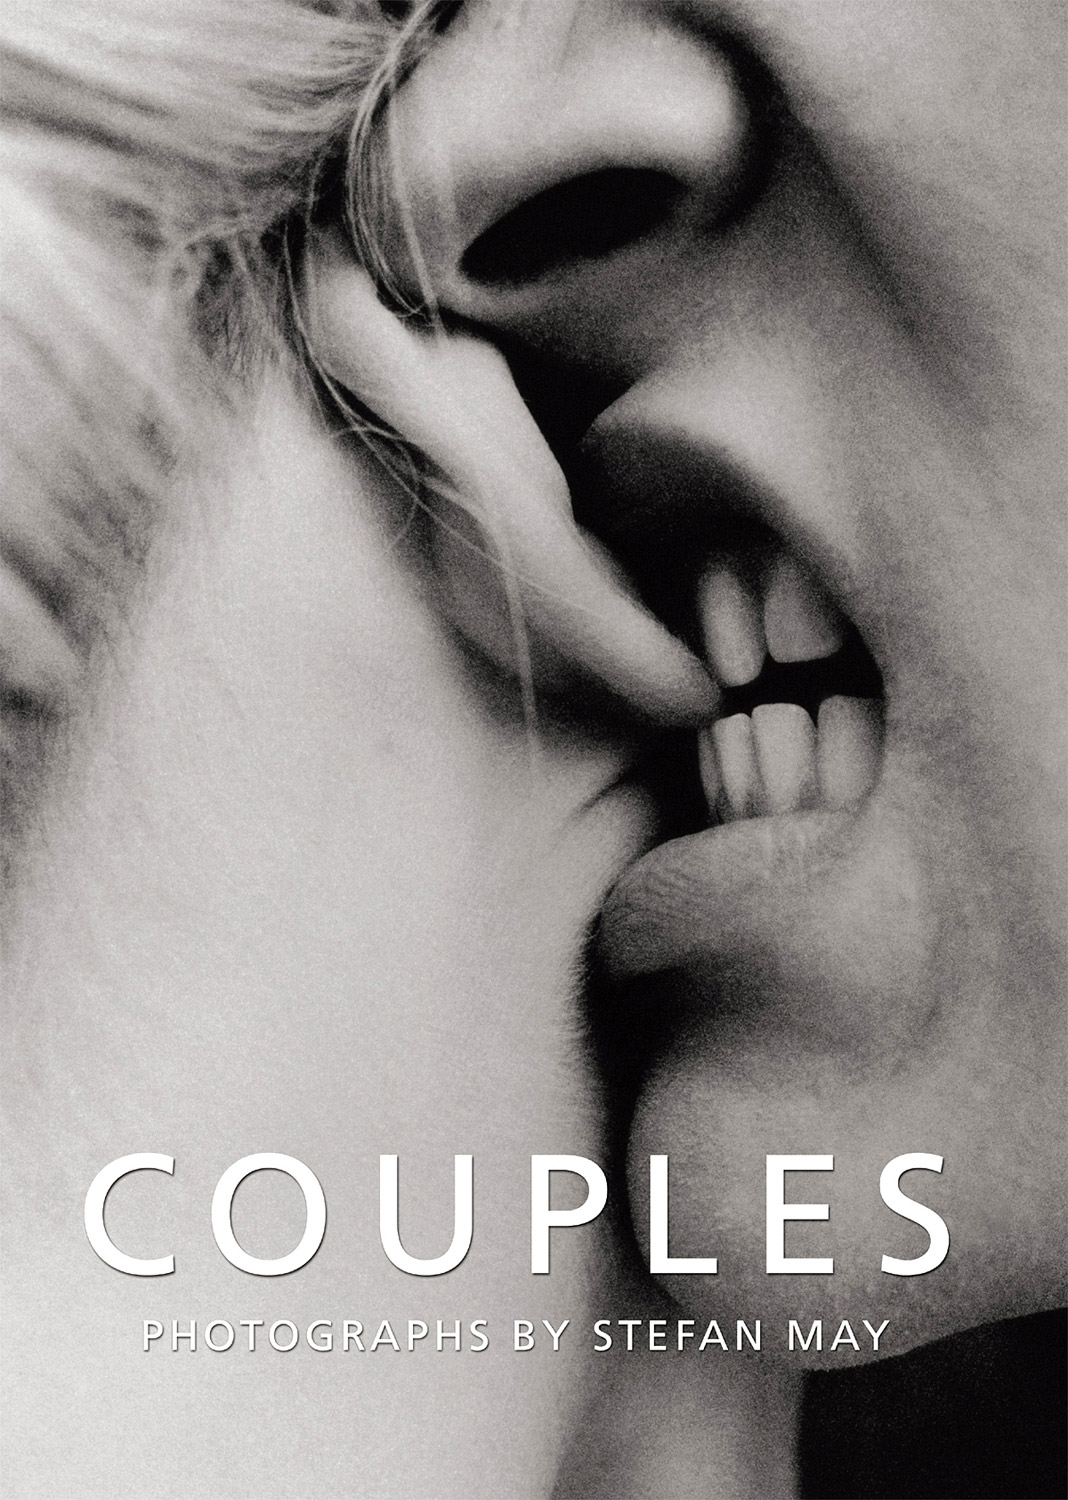 Stefan-May_Couples_Book_Cover_D50-TW.jpg